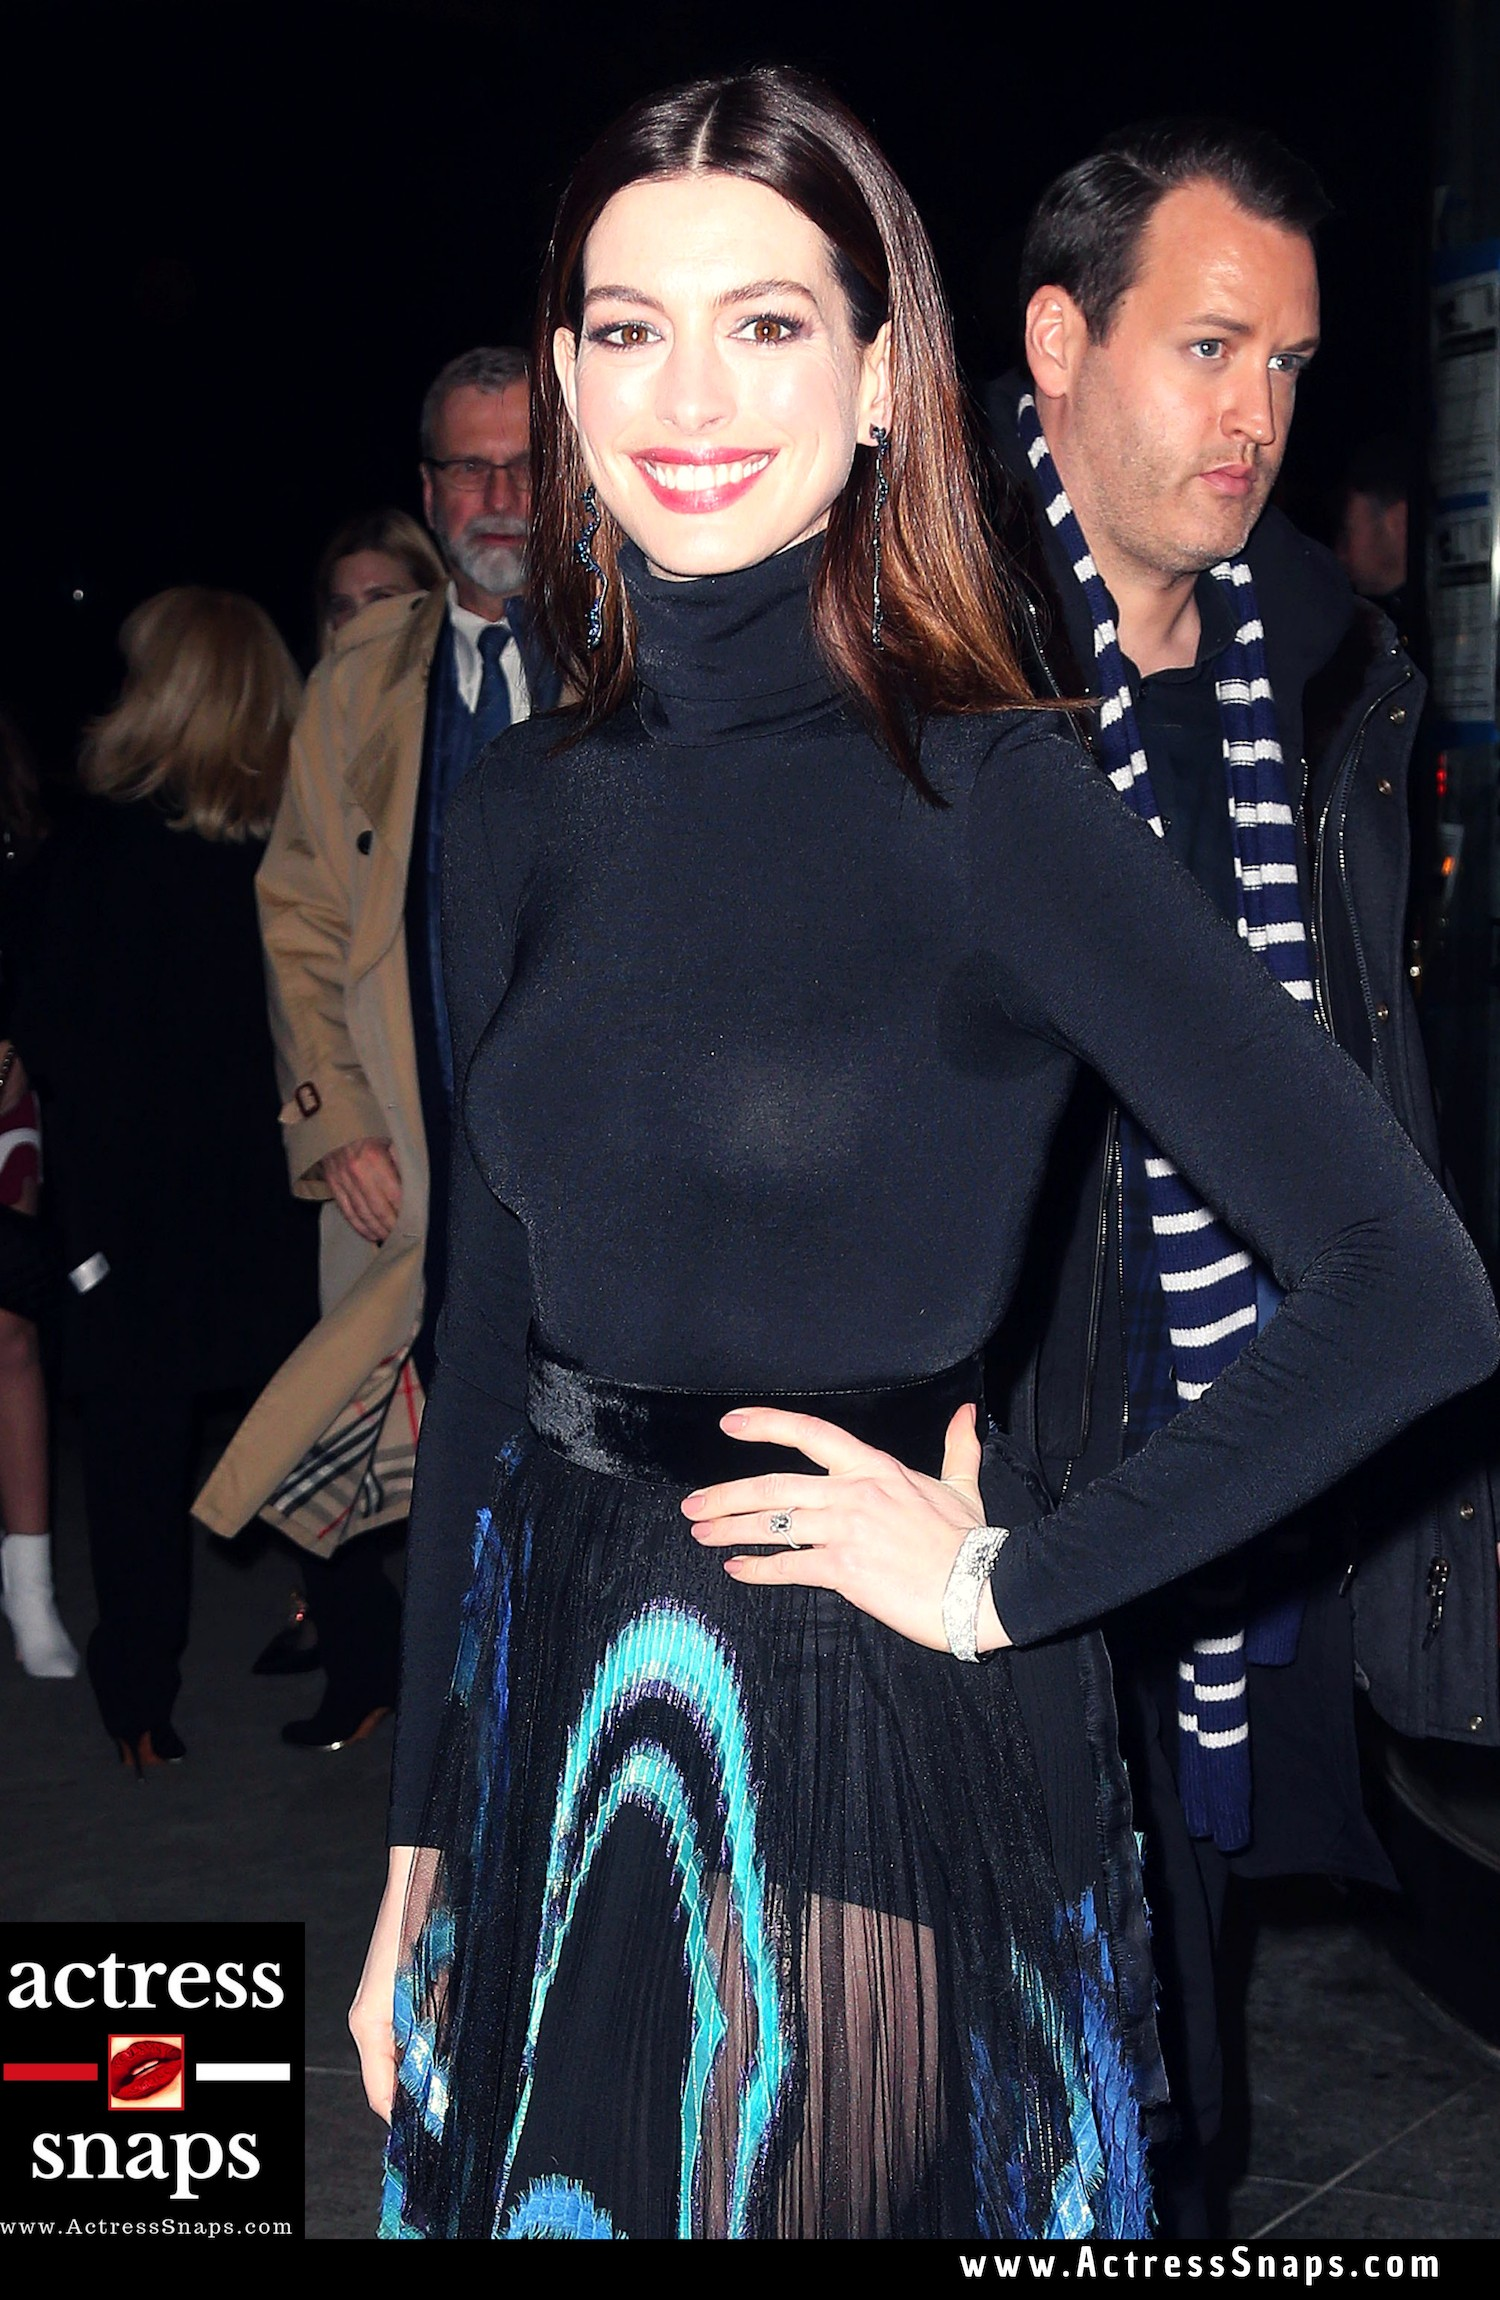 Anne Hathaway - Serenity Film Premiere - Sexy Actress Pictures | Hot Actress Pictures - ActressSnaps.com